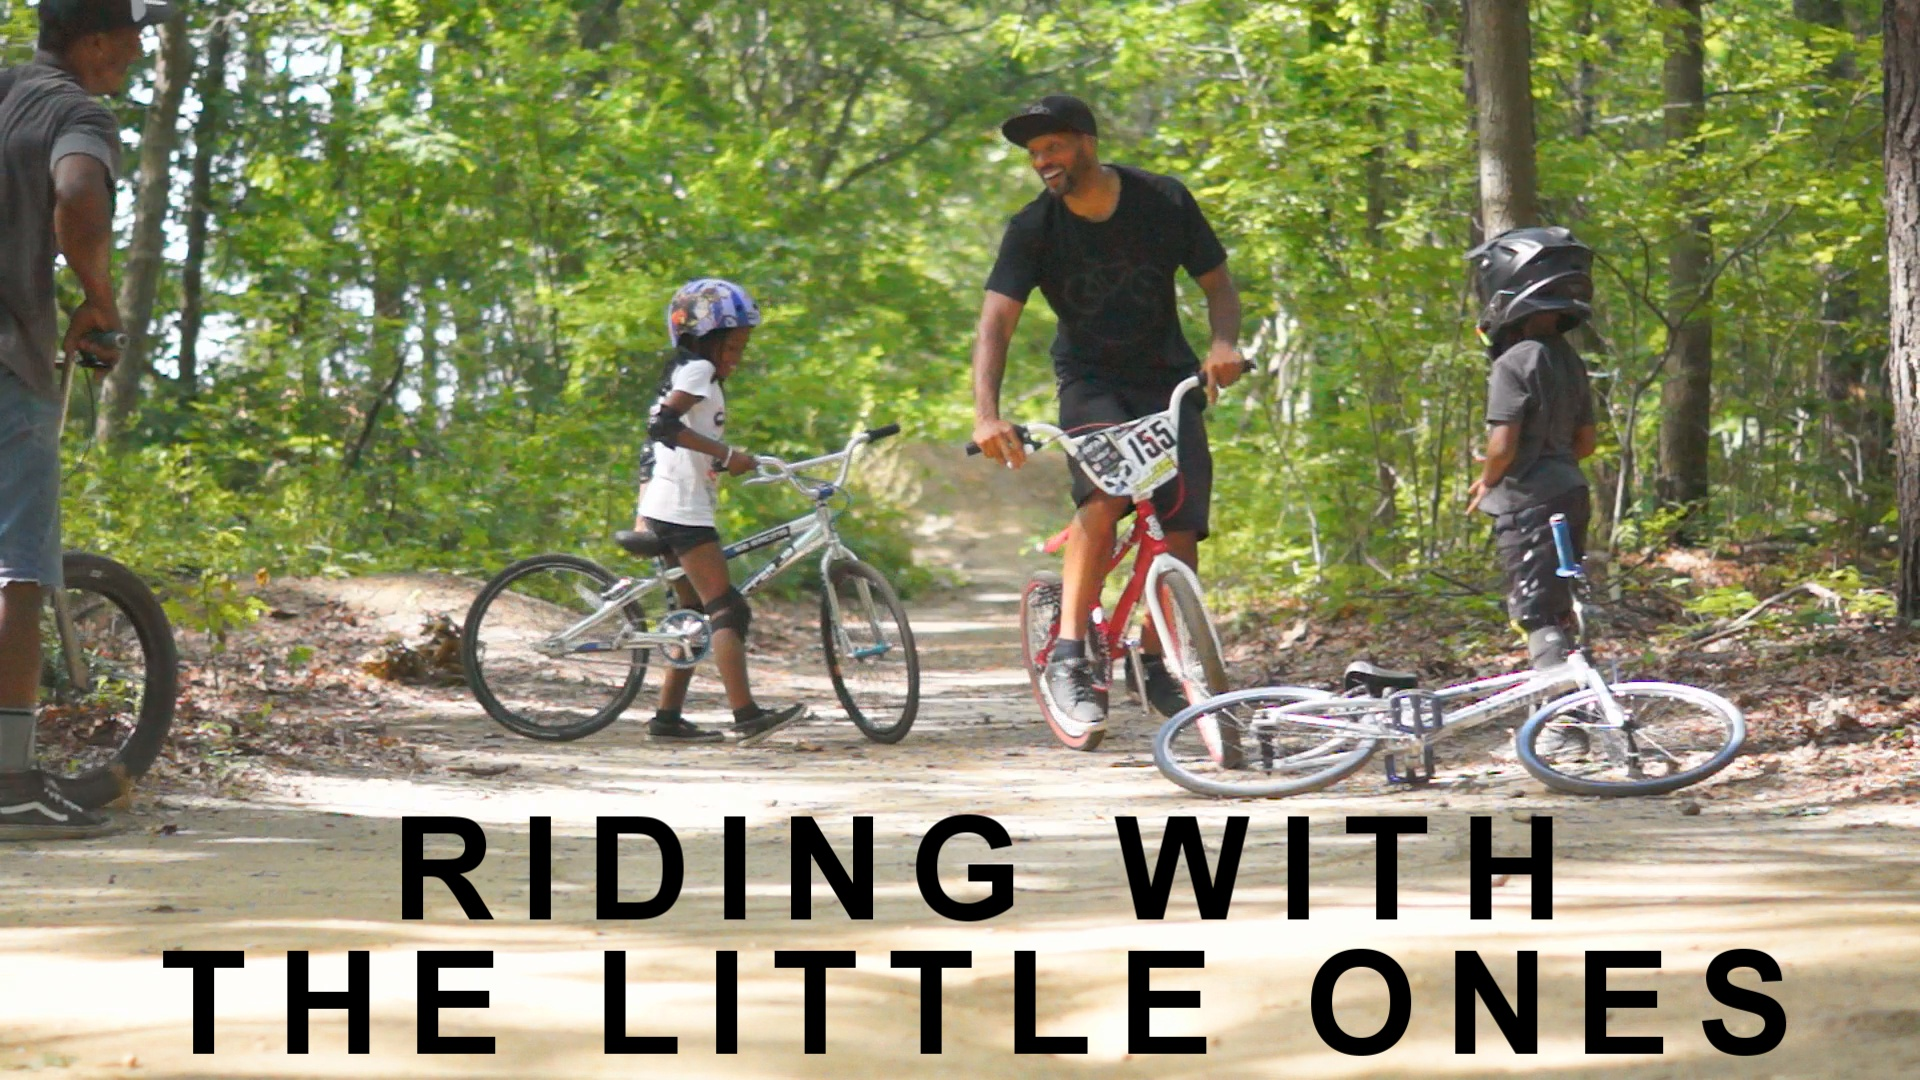 Riding With The Little ones